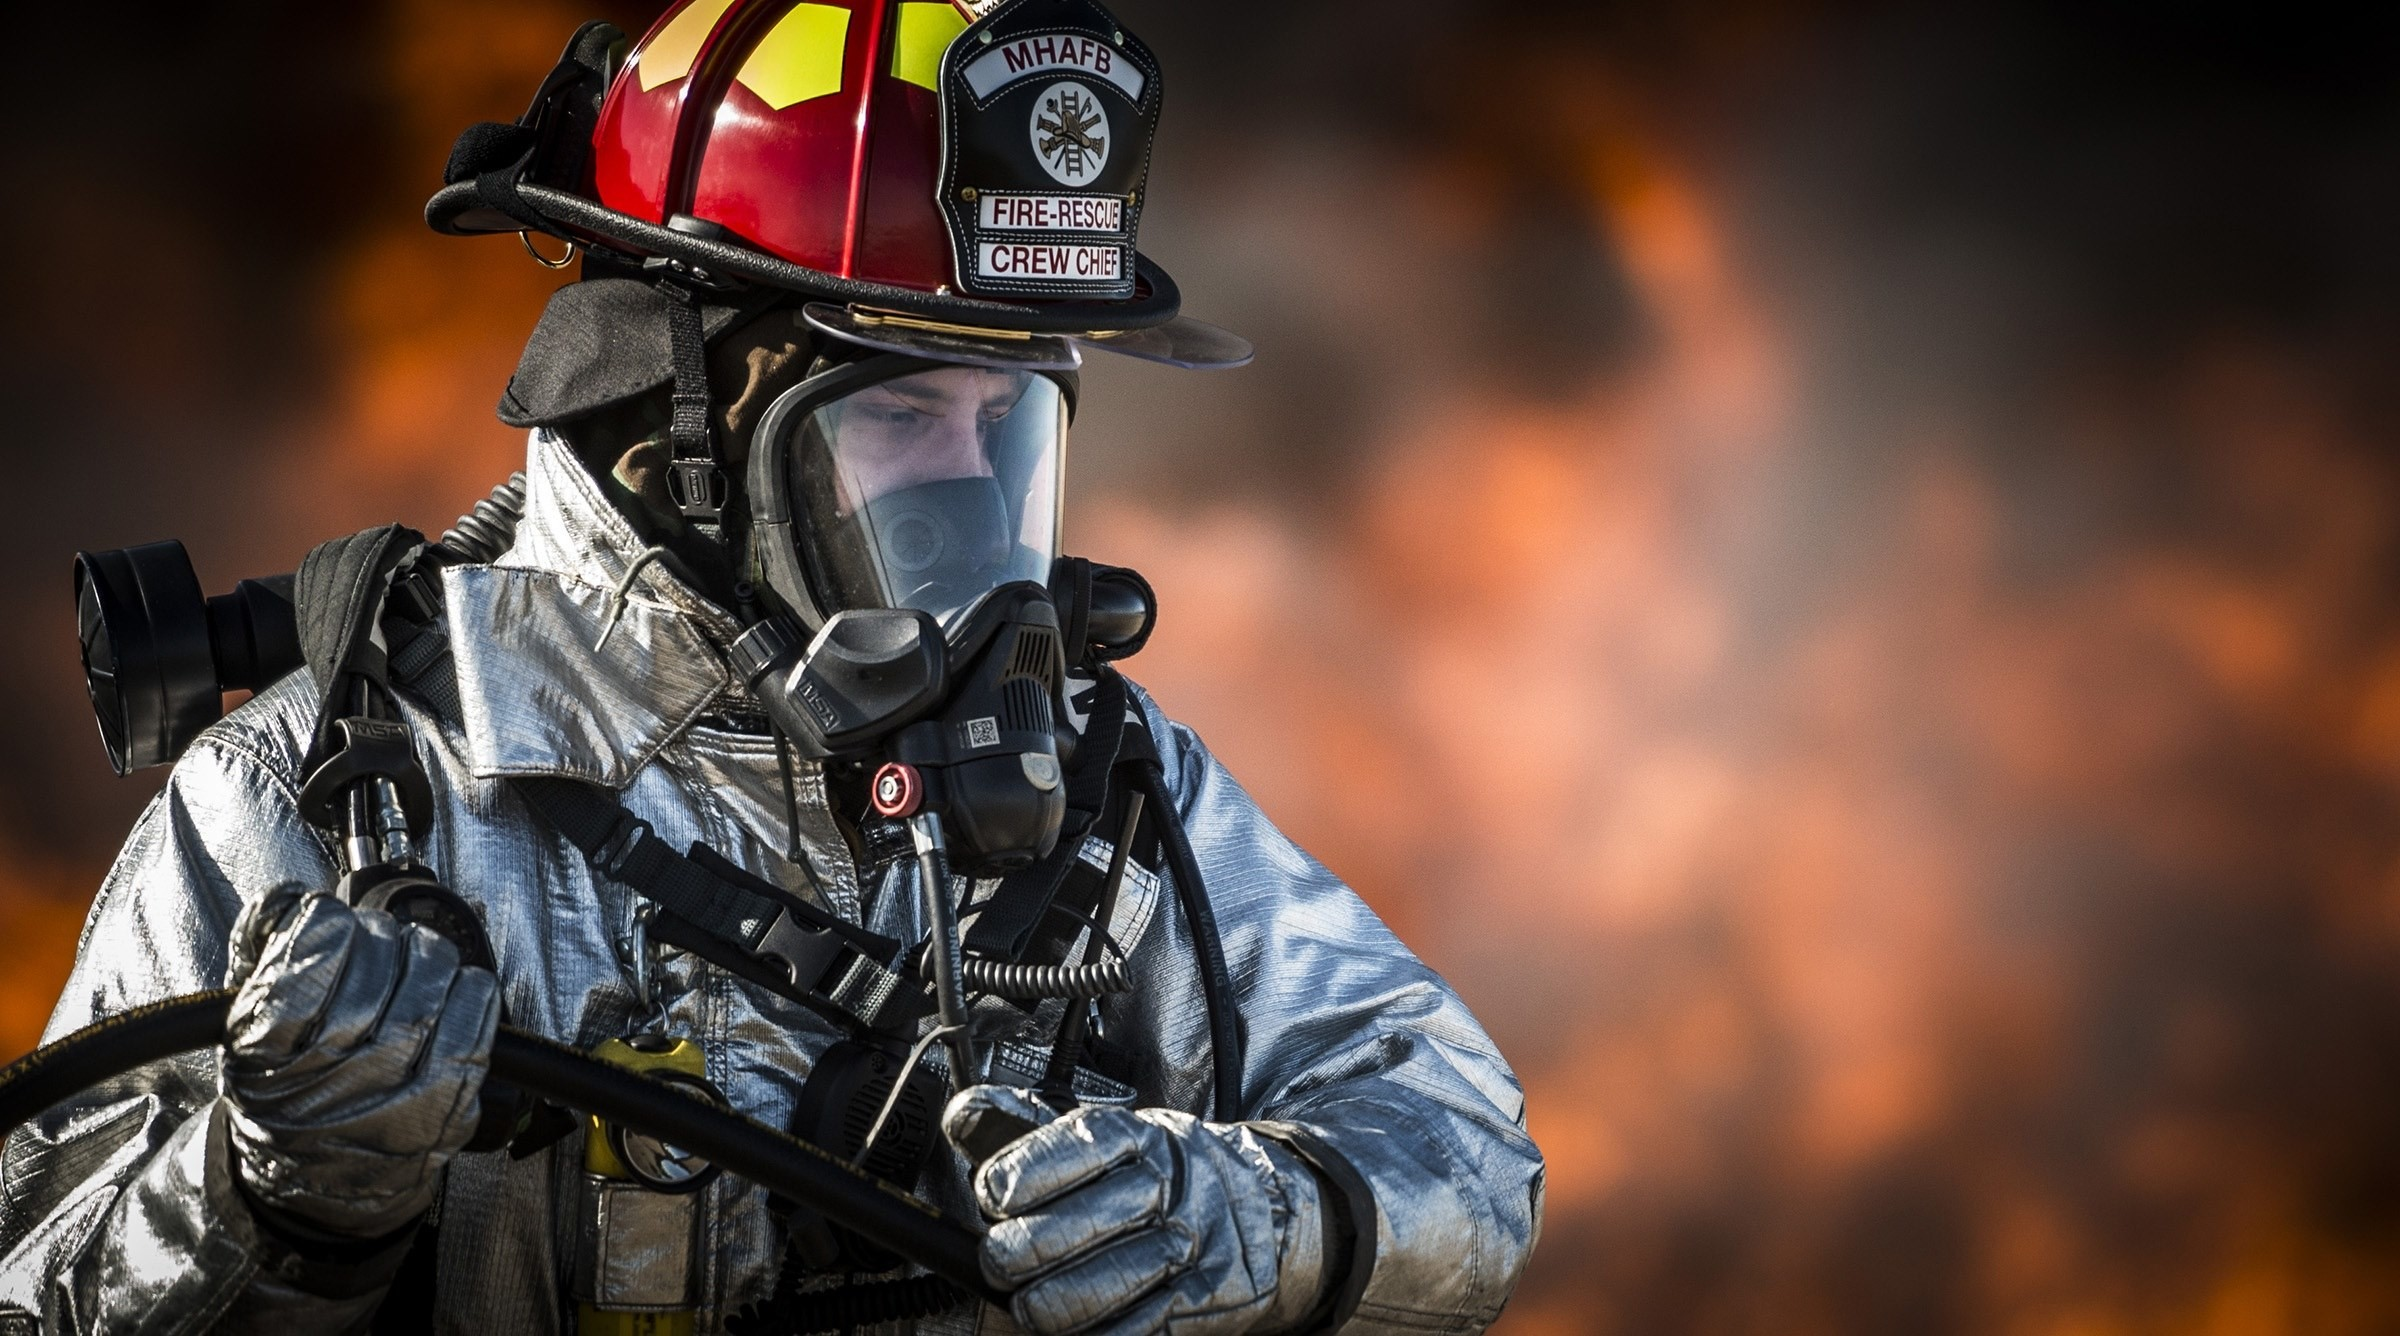 Res: 2400x1336, # #firefighter #fire #portrait #training #monitor #hot wallpaper  and background #106662